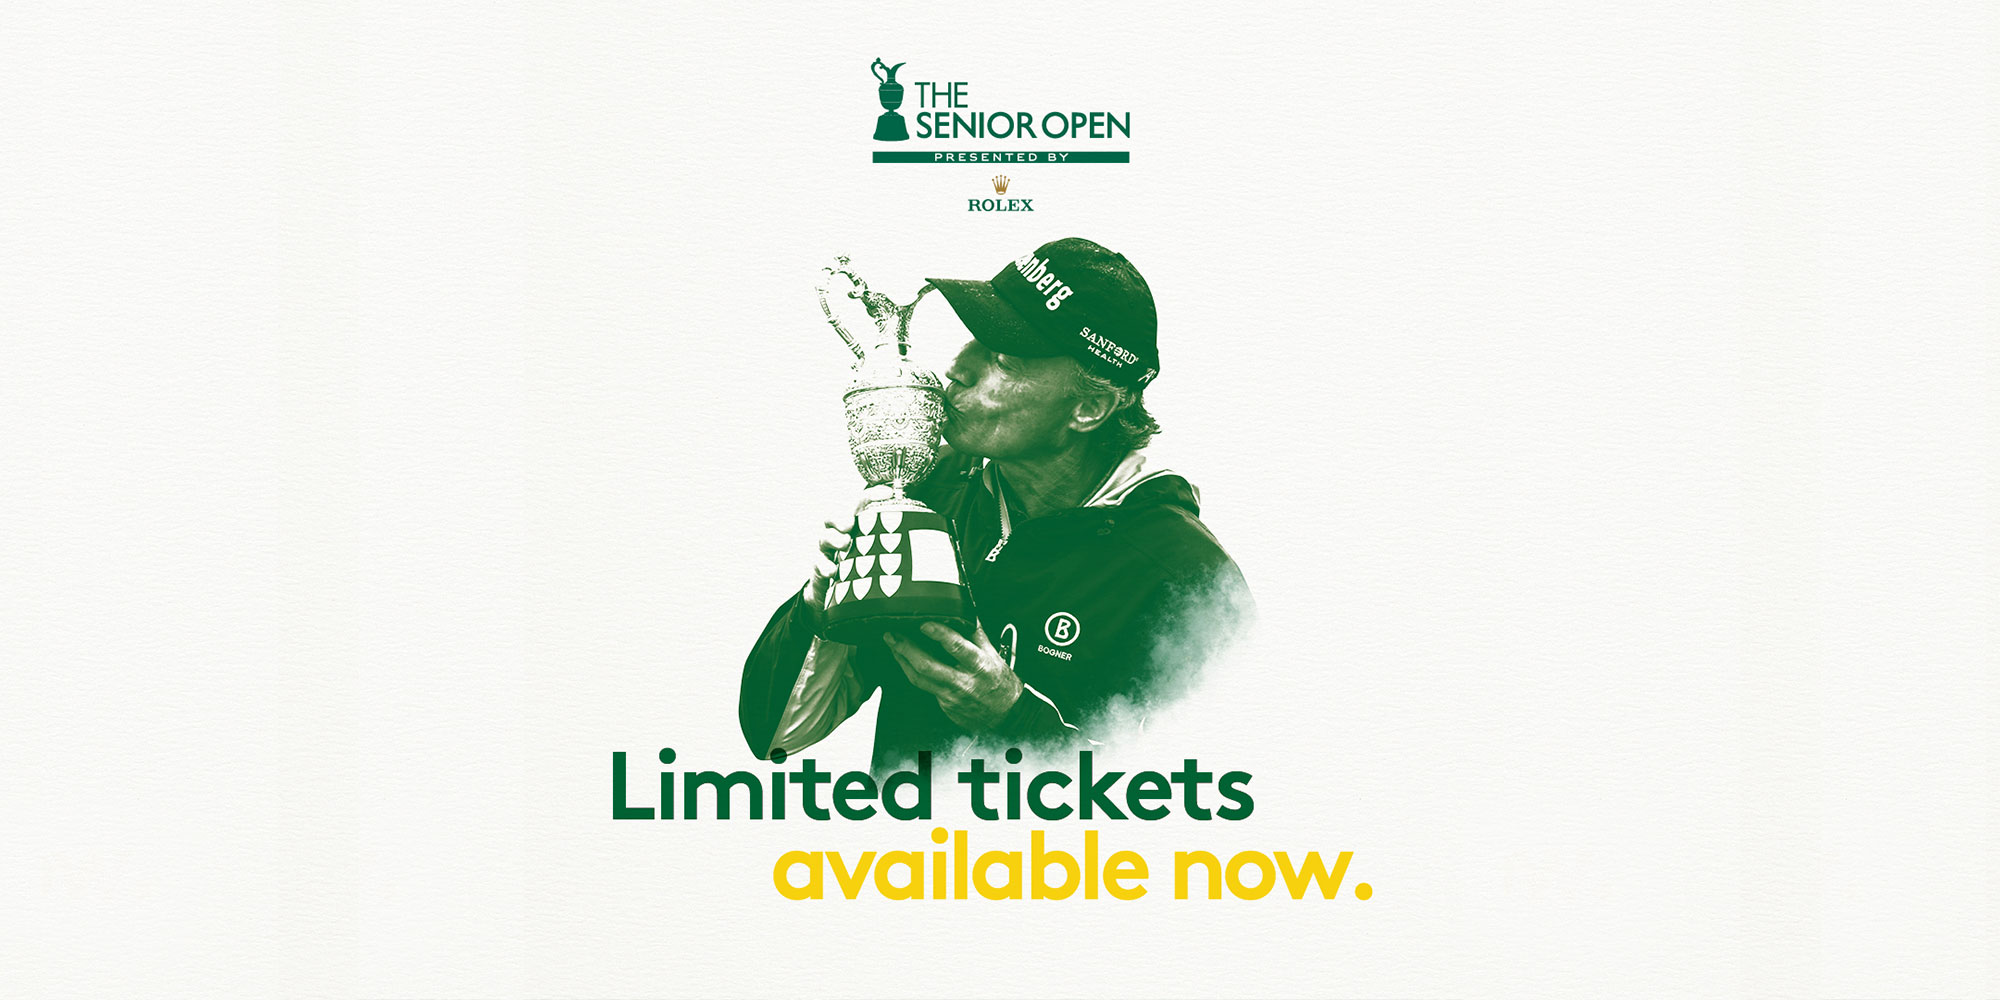 The Senior Open Presented by Rolex - Sunday